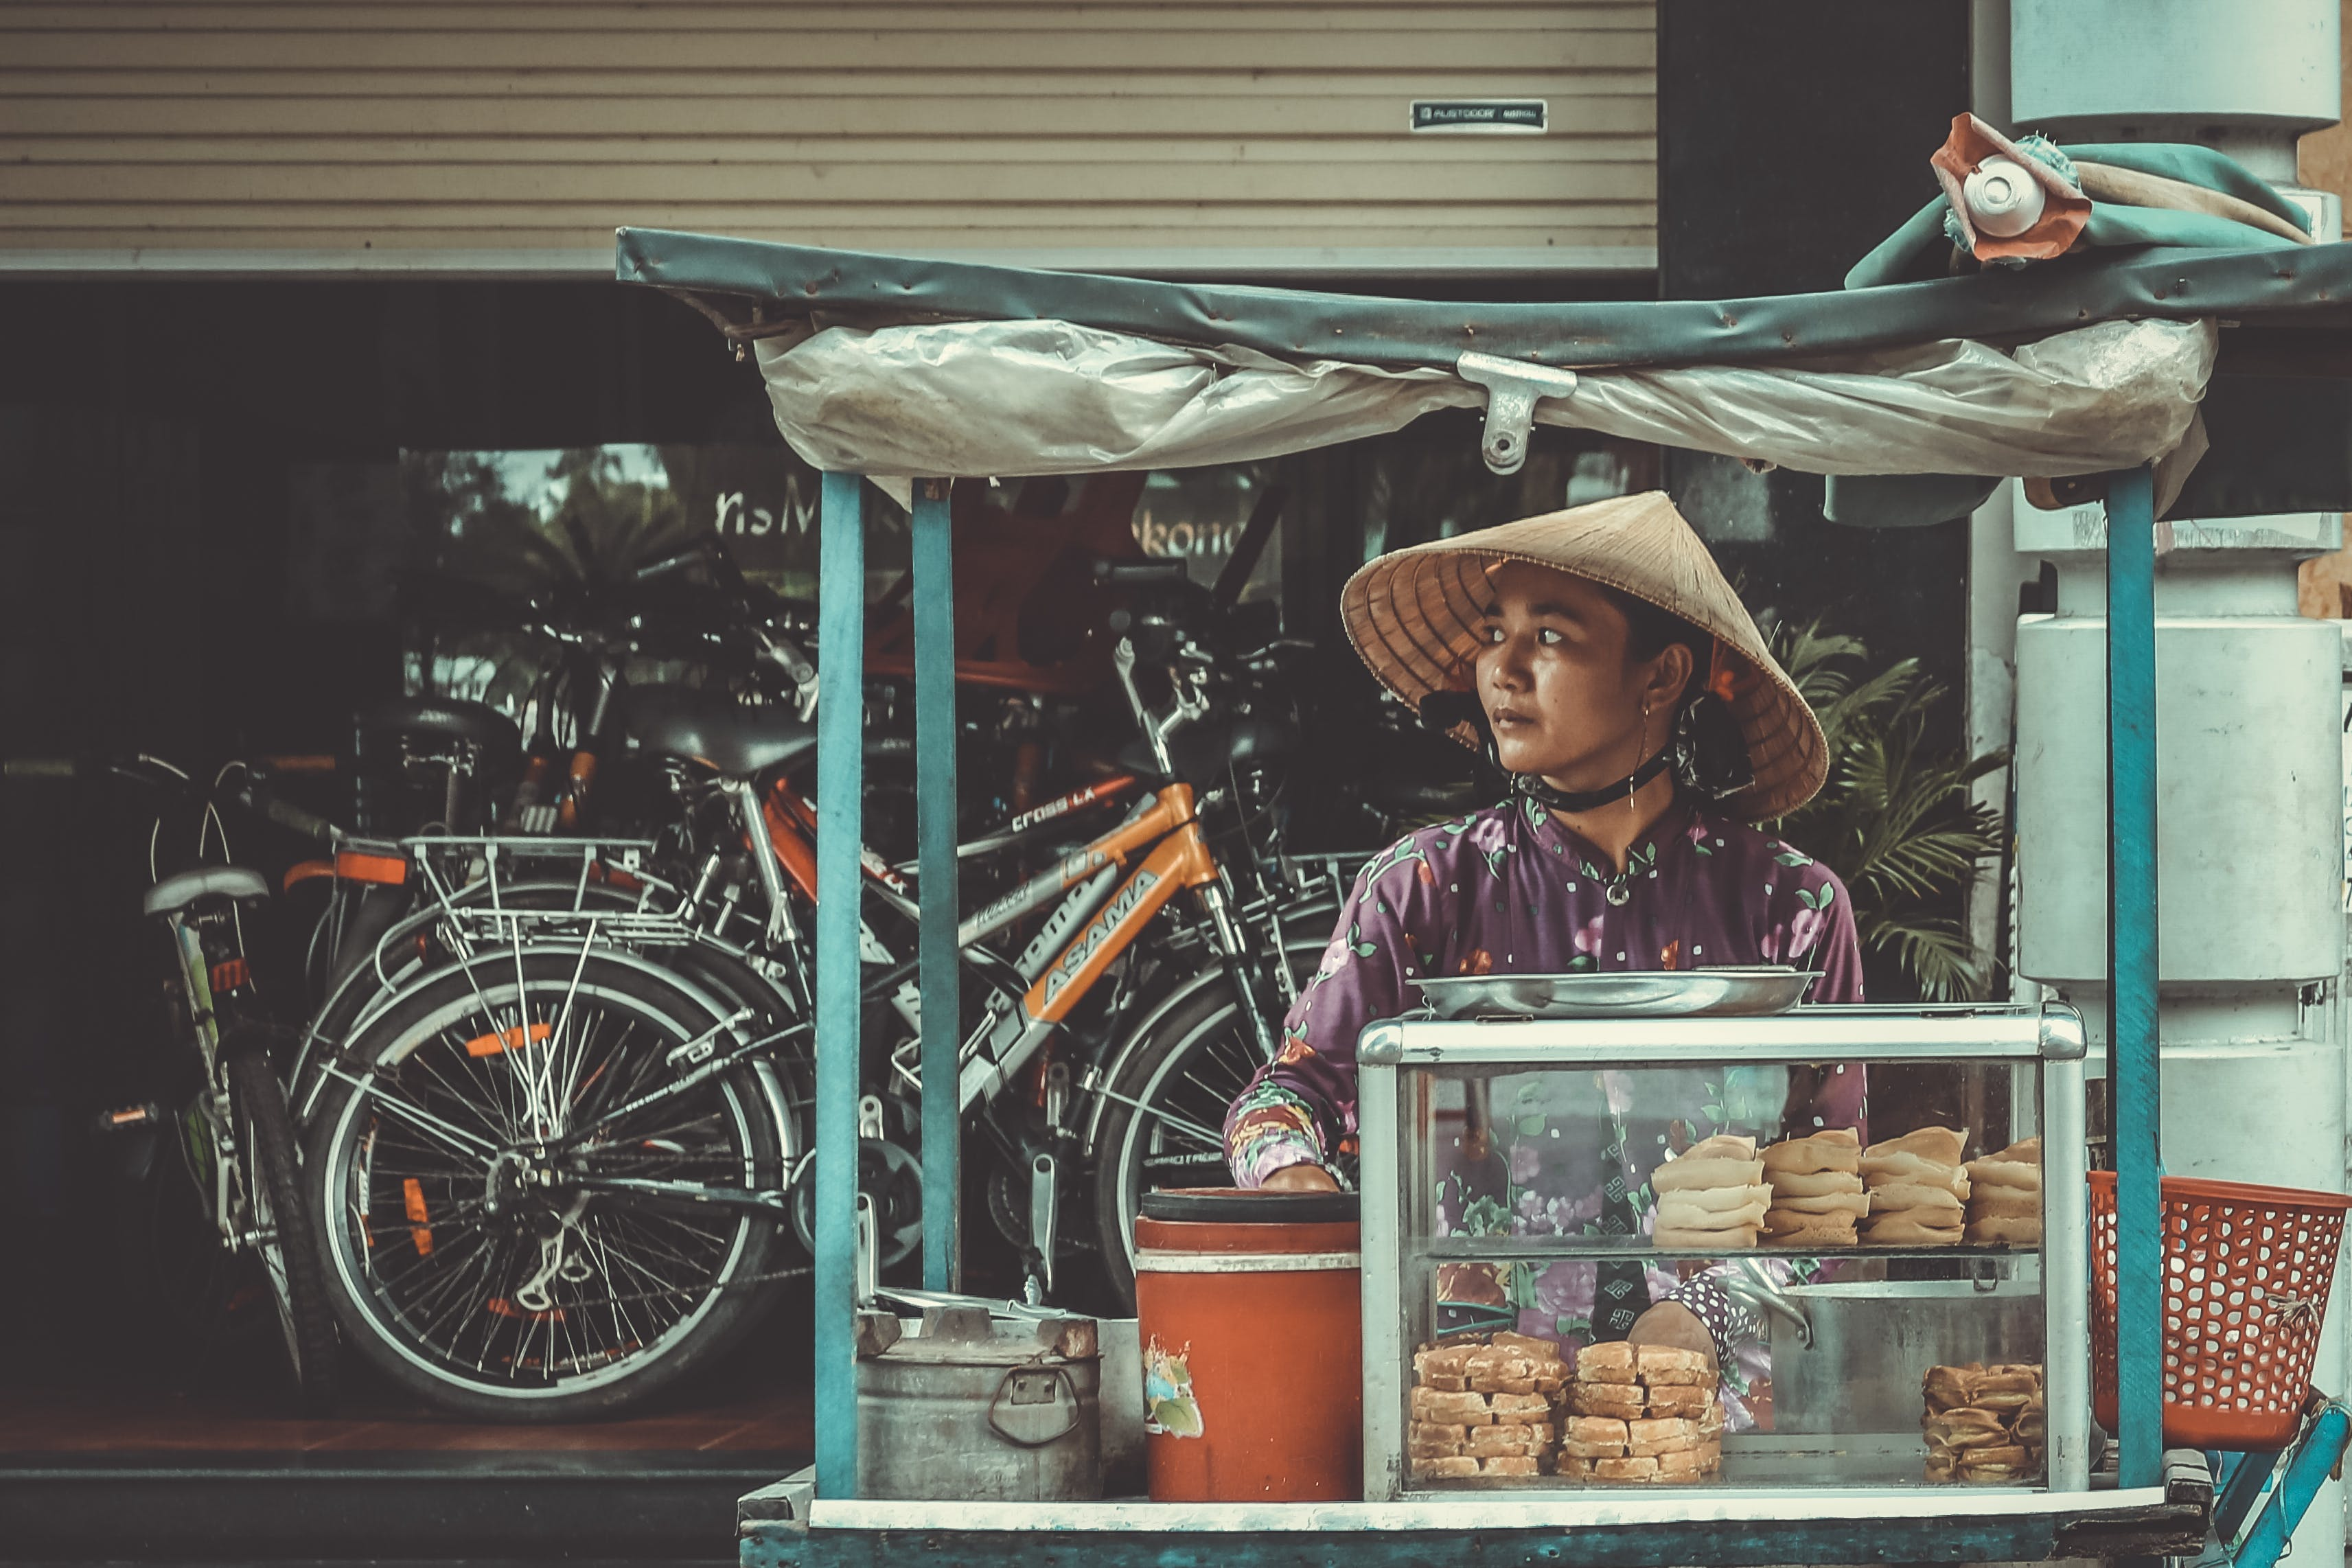 Man Standing in Front of Food Stand